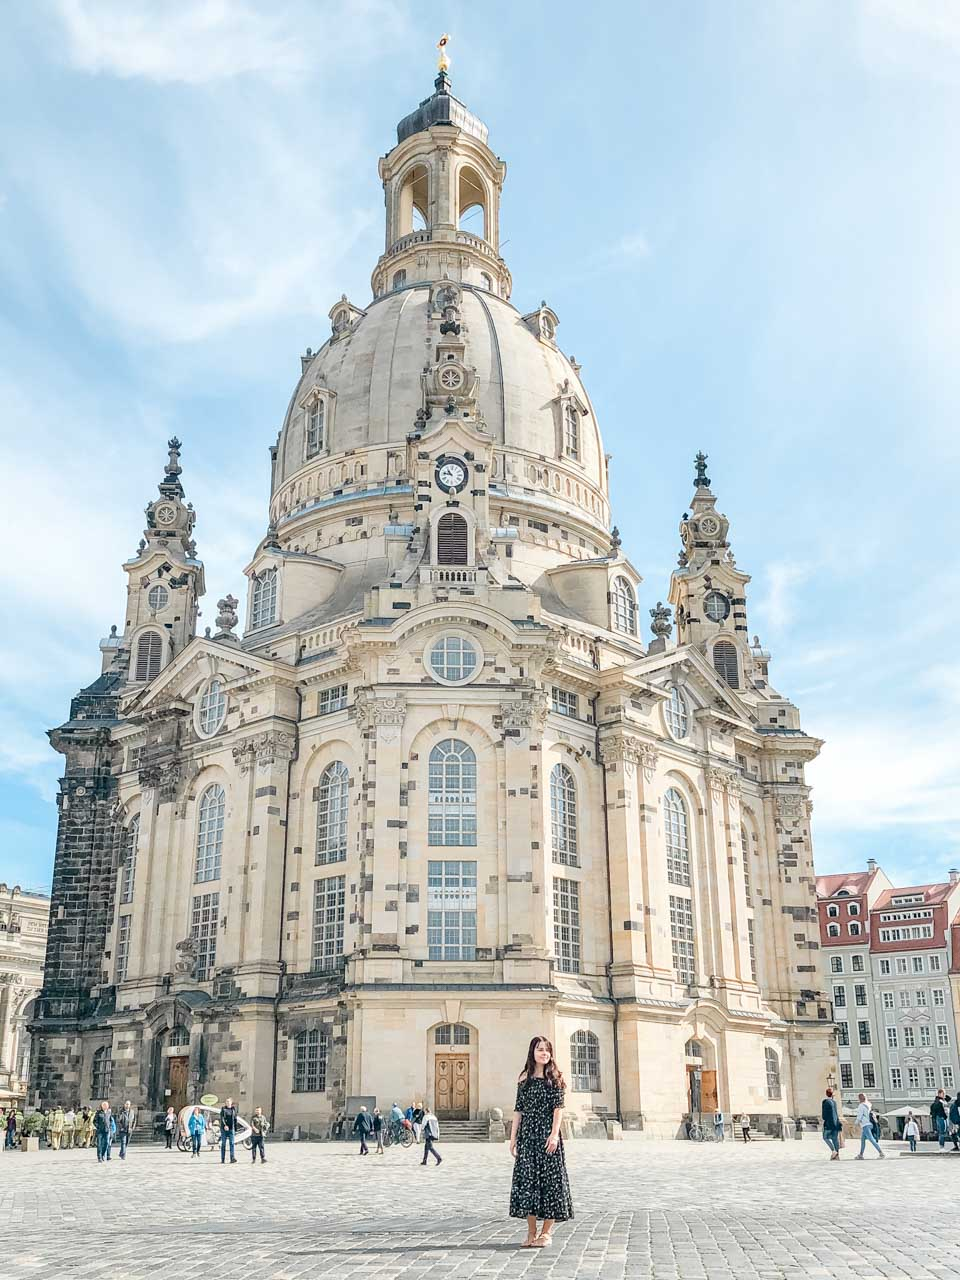 A girl in a maxi dress standing in front of the Frauenkirche in Dresden, Germany